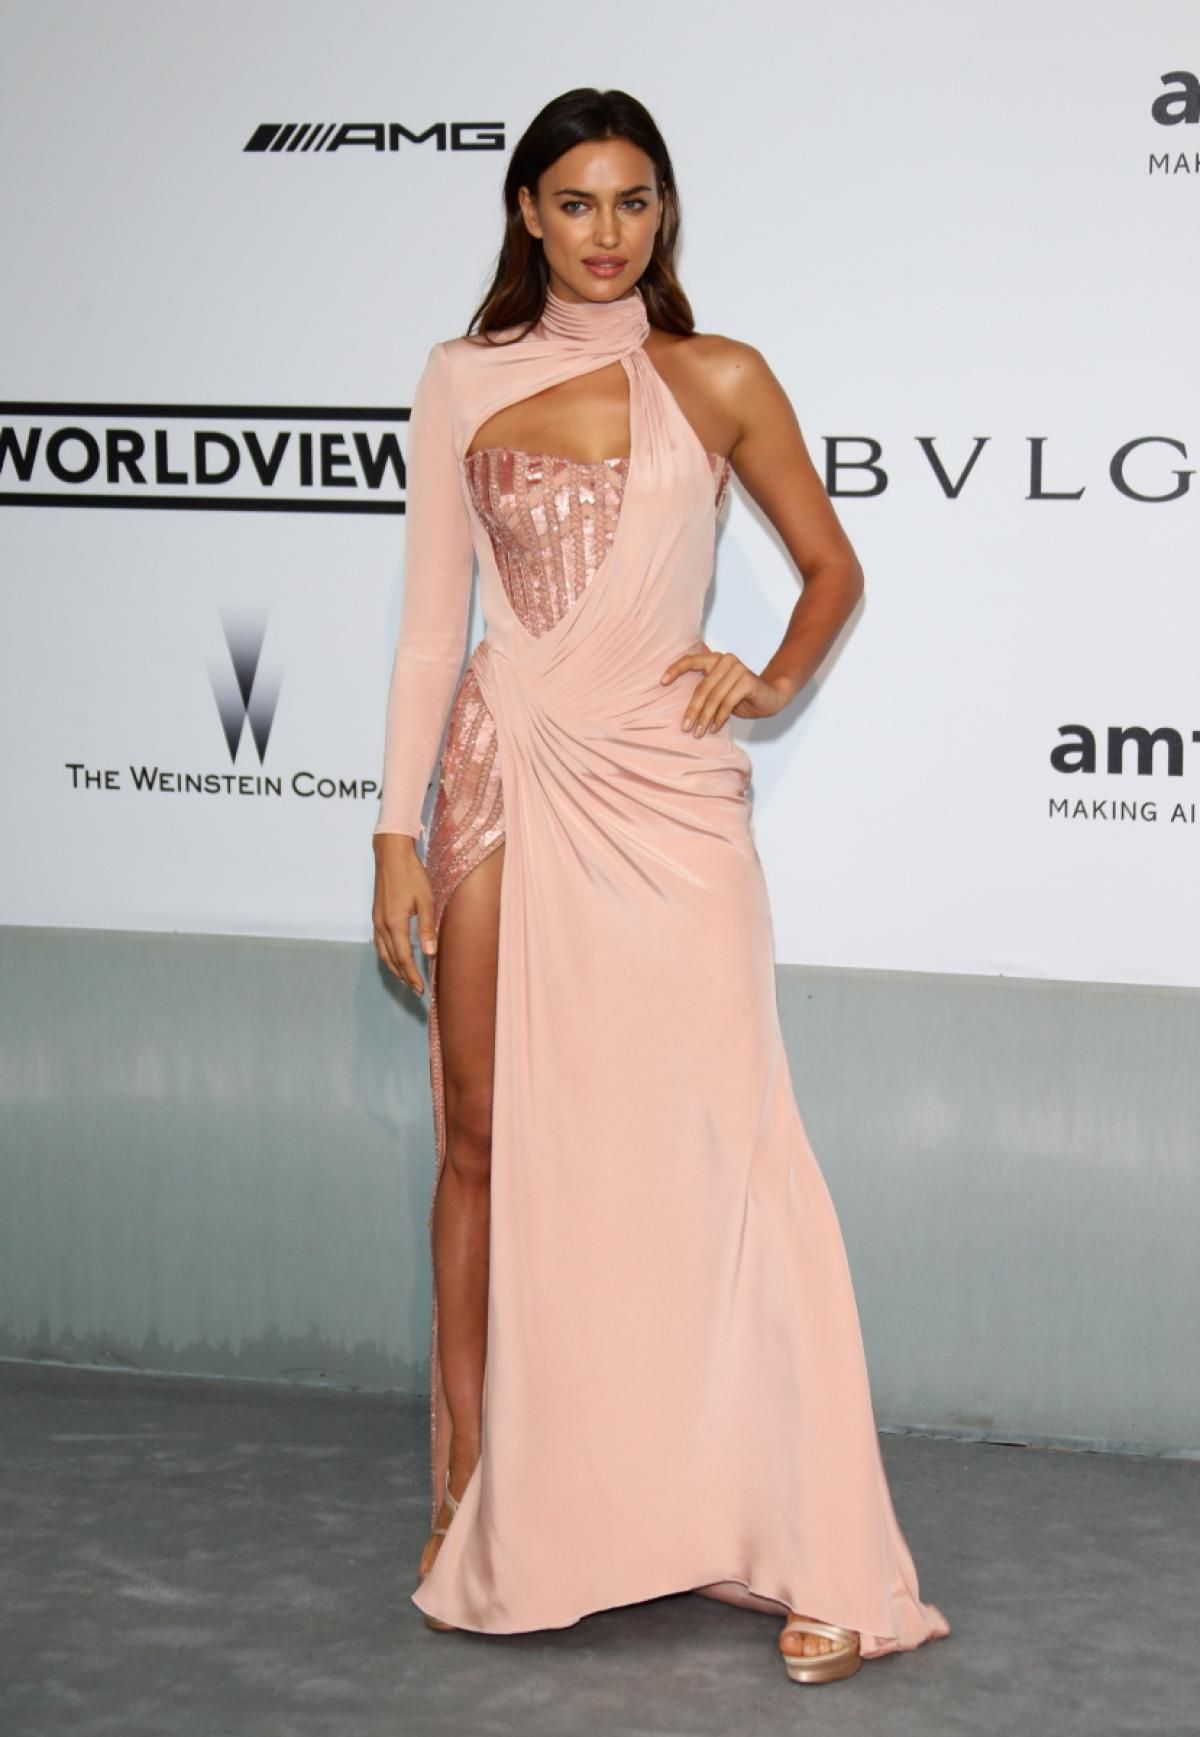 Irina Shayk - Photos - Stars grace the red carpet at amfAR gala in ... 4419e0c0ad07